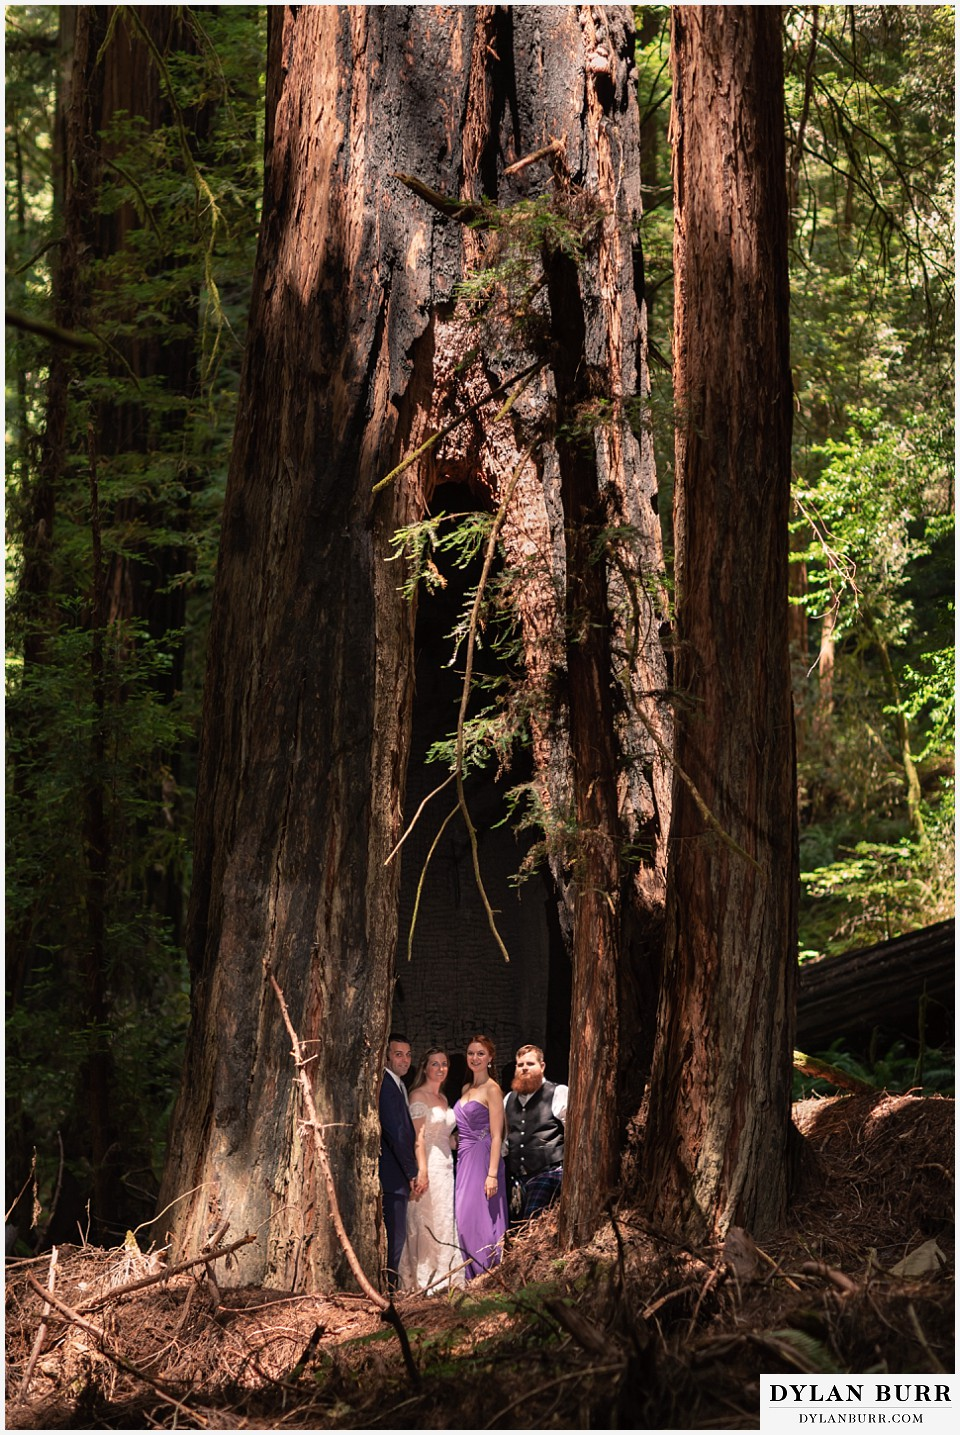 redwood forest wedding elopement avenue of the giants california entire bridal party inside giant tree